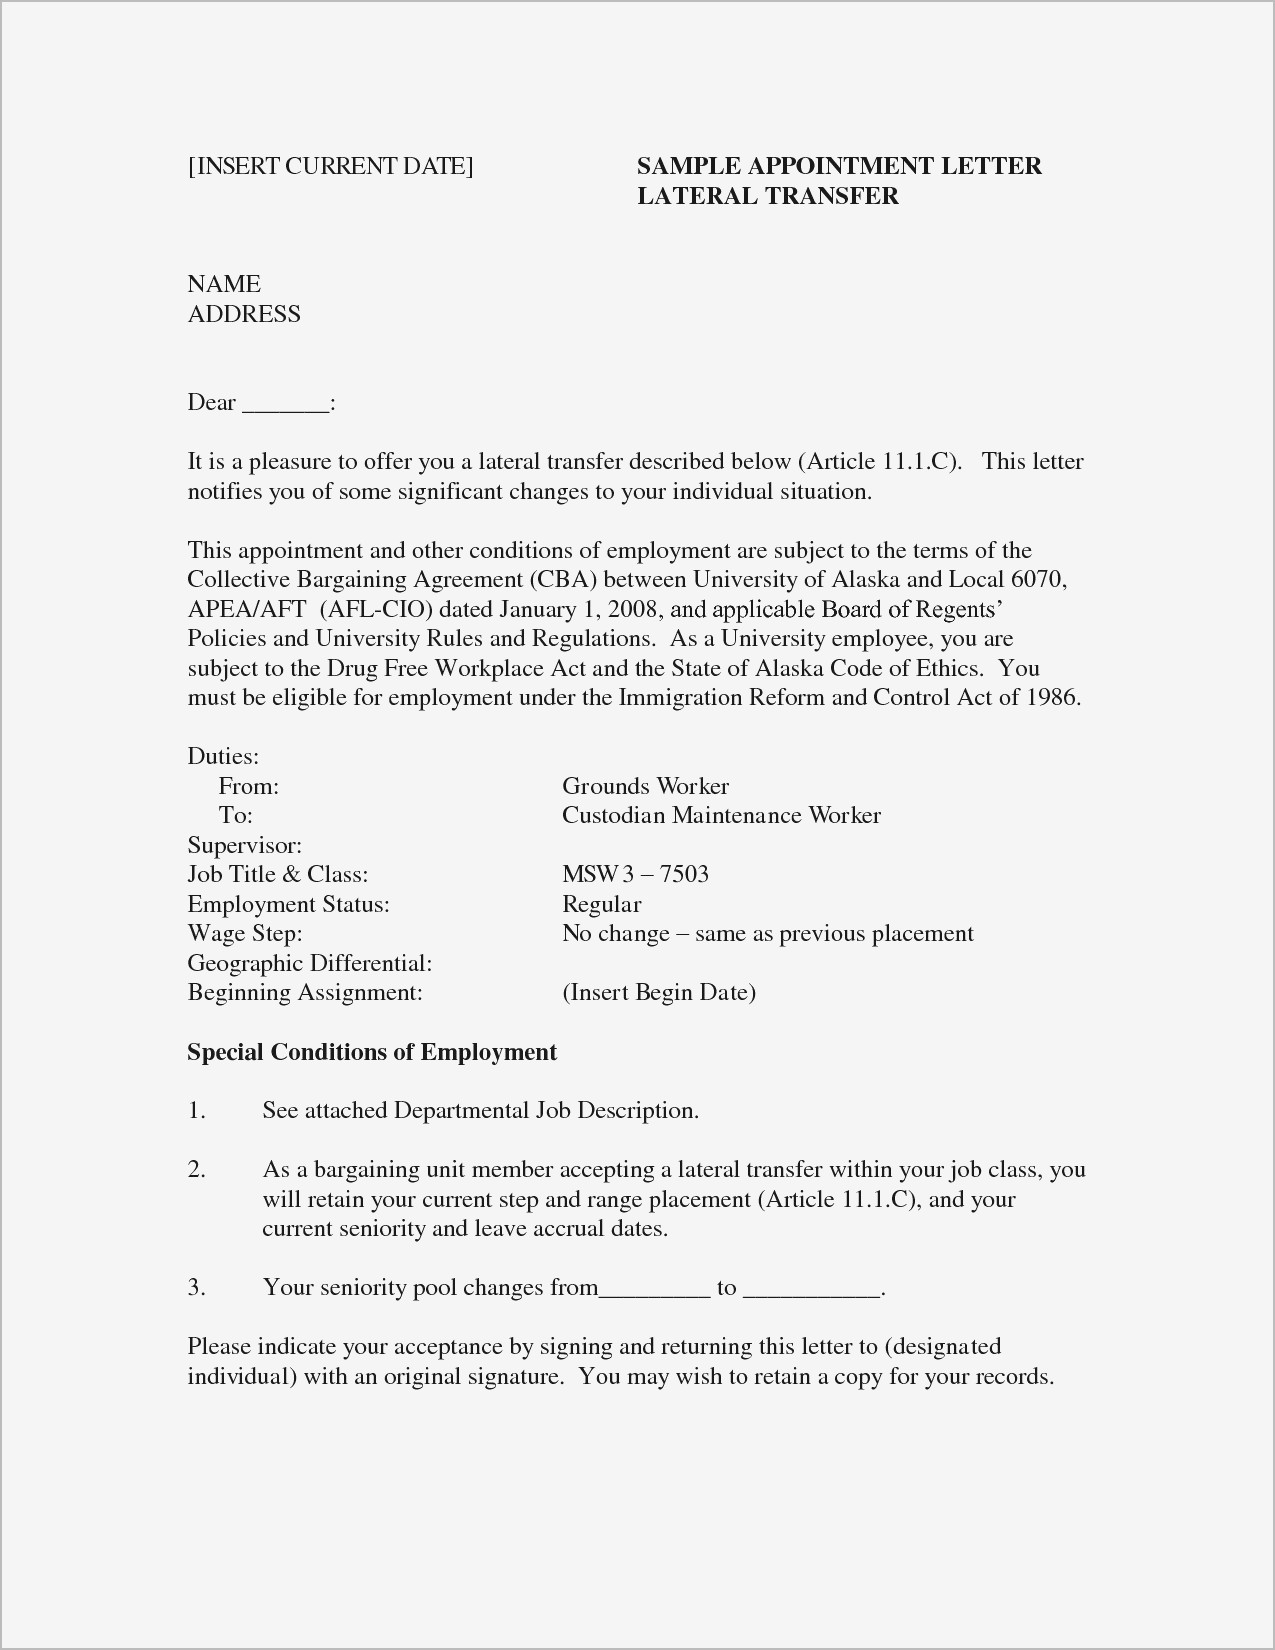 Official Job Offer Letter Template - formal Fer Letter Inspirational Job Fer Letter Template Us Copy Od